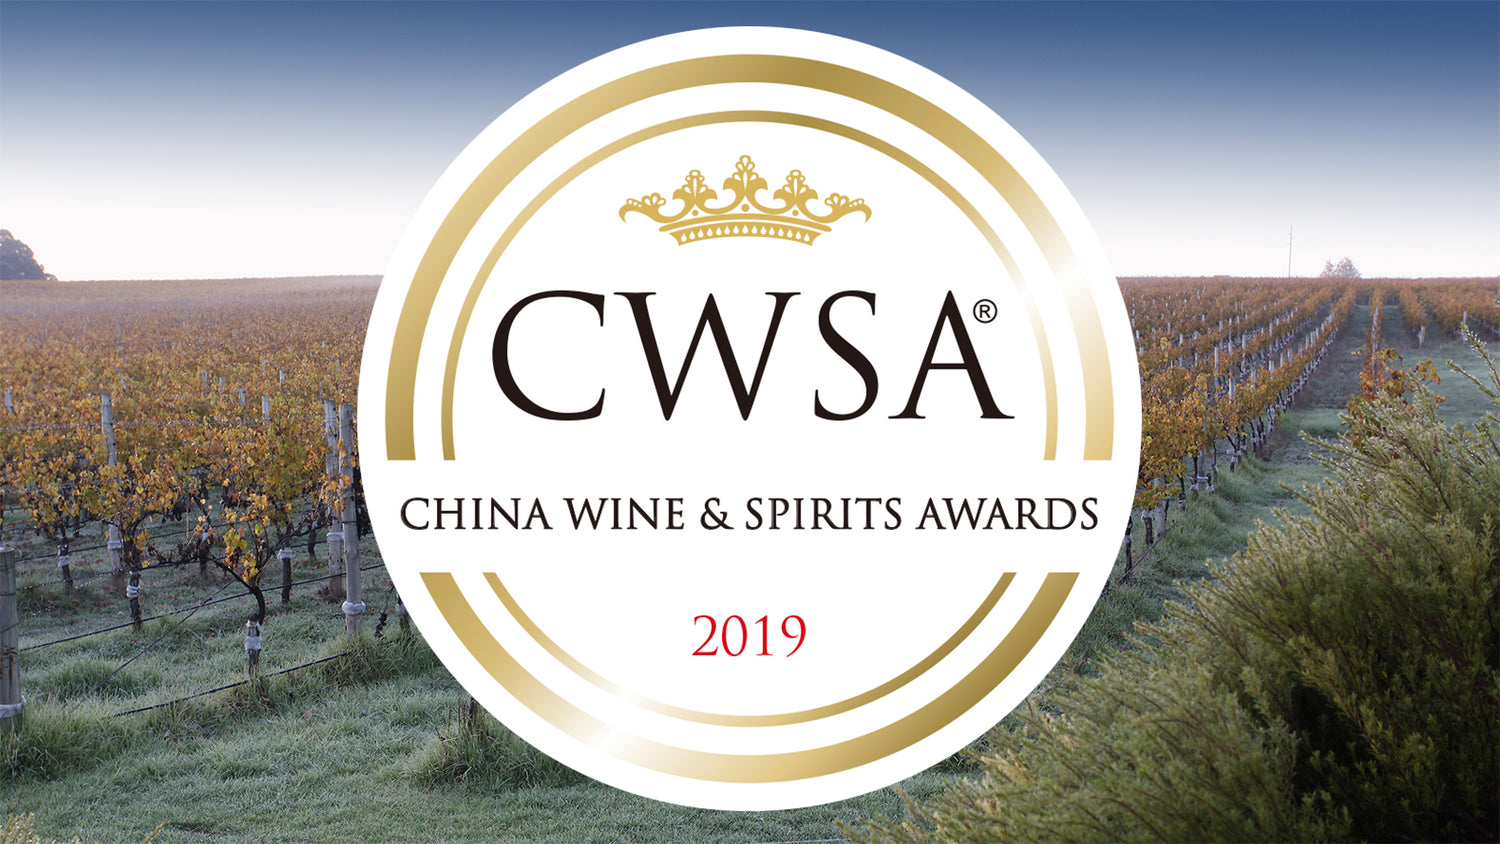 new-look smithbrook wines win gold at the china wine & spirits awards 2019